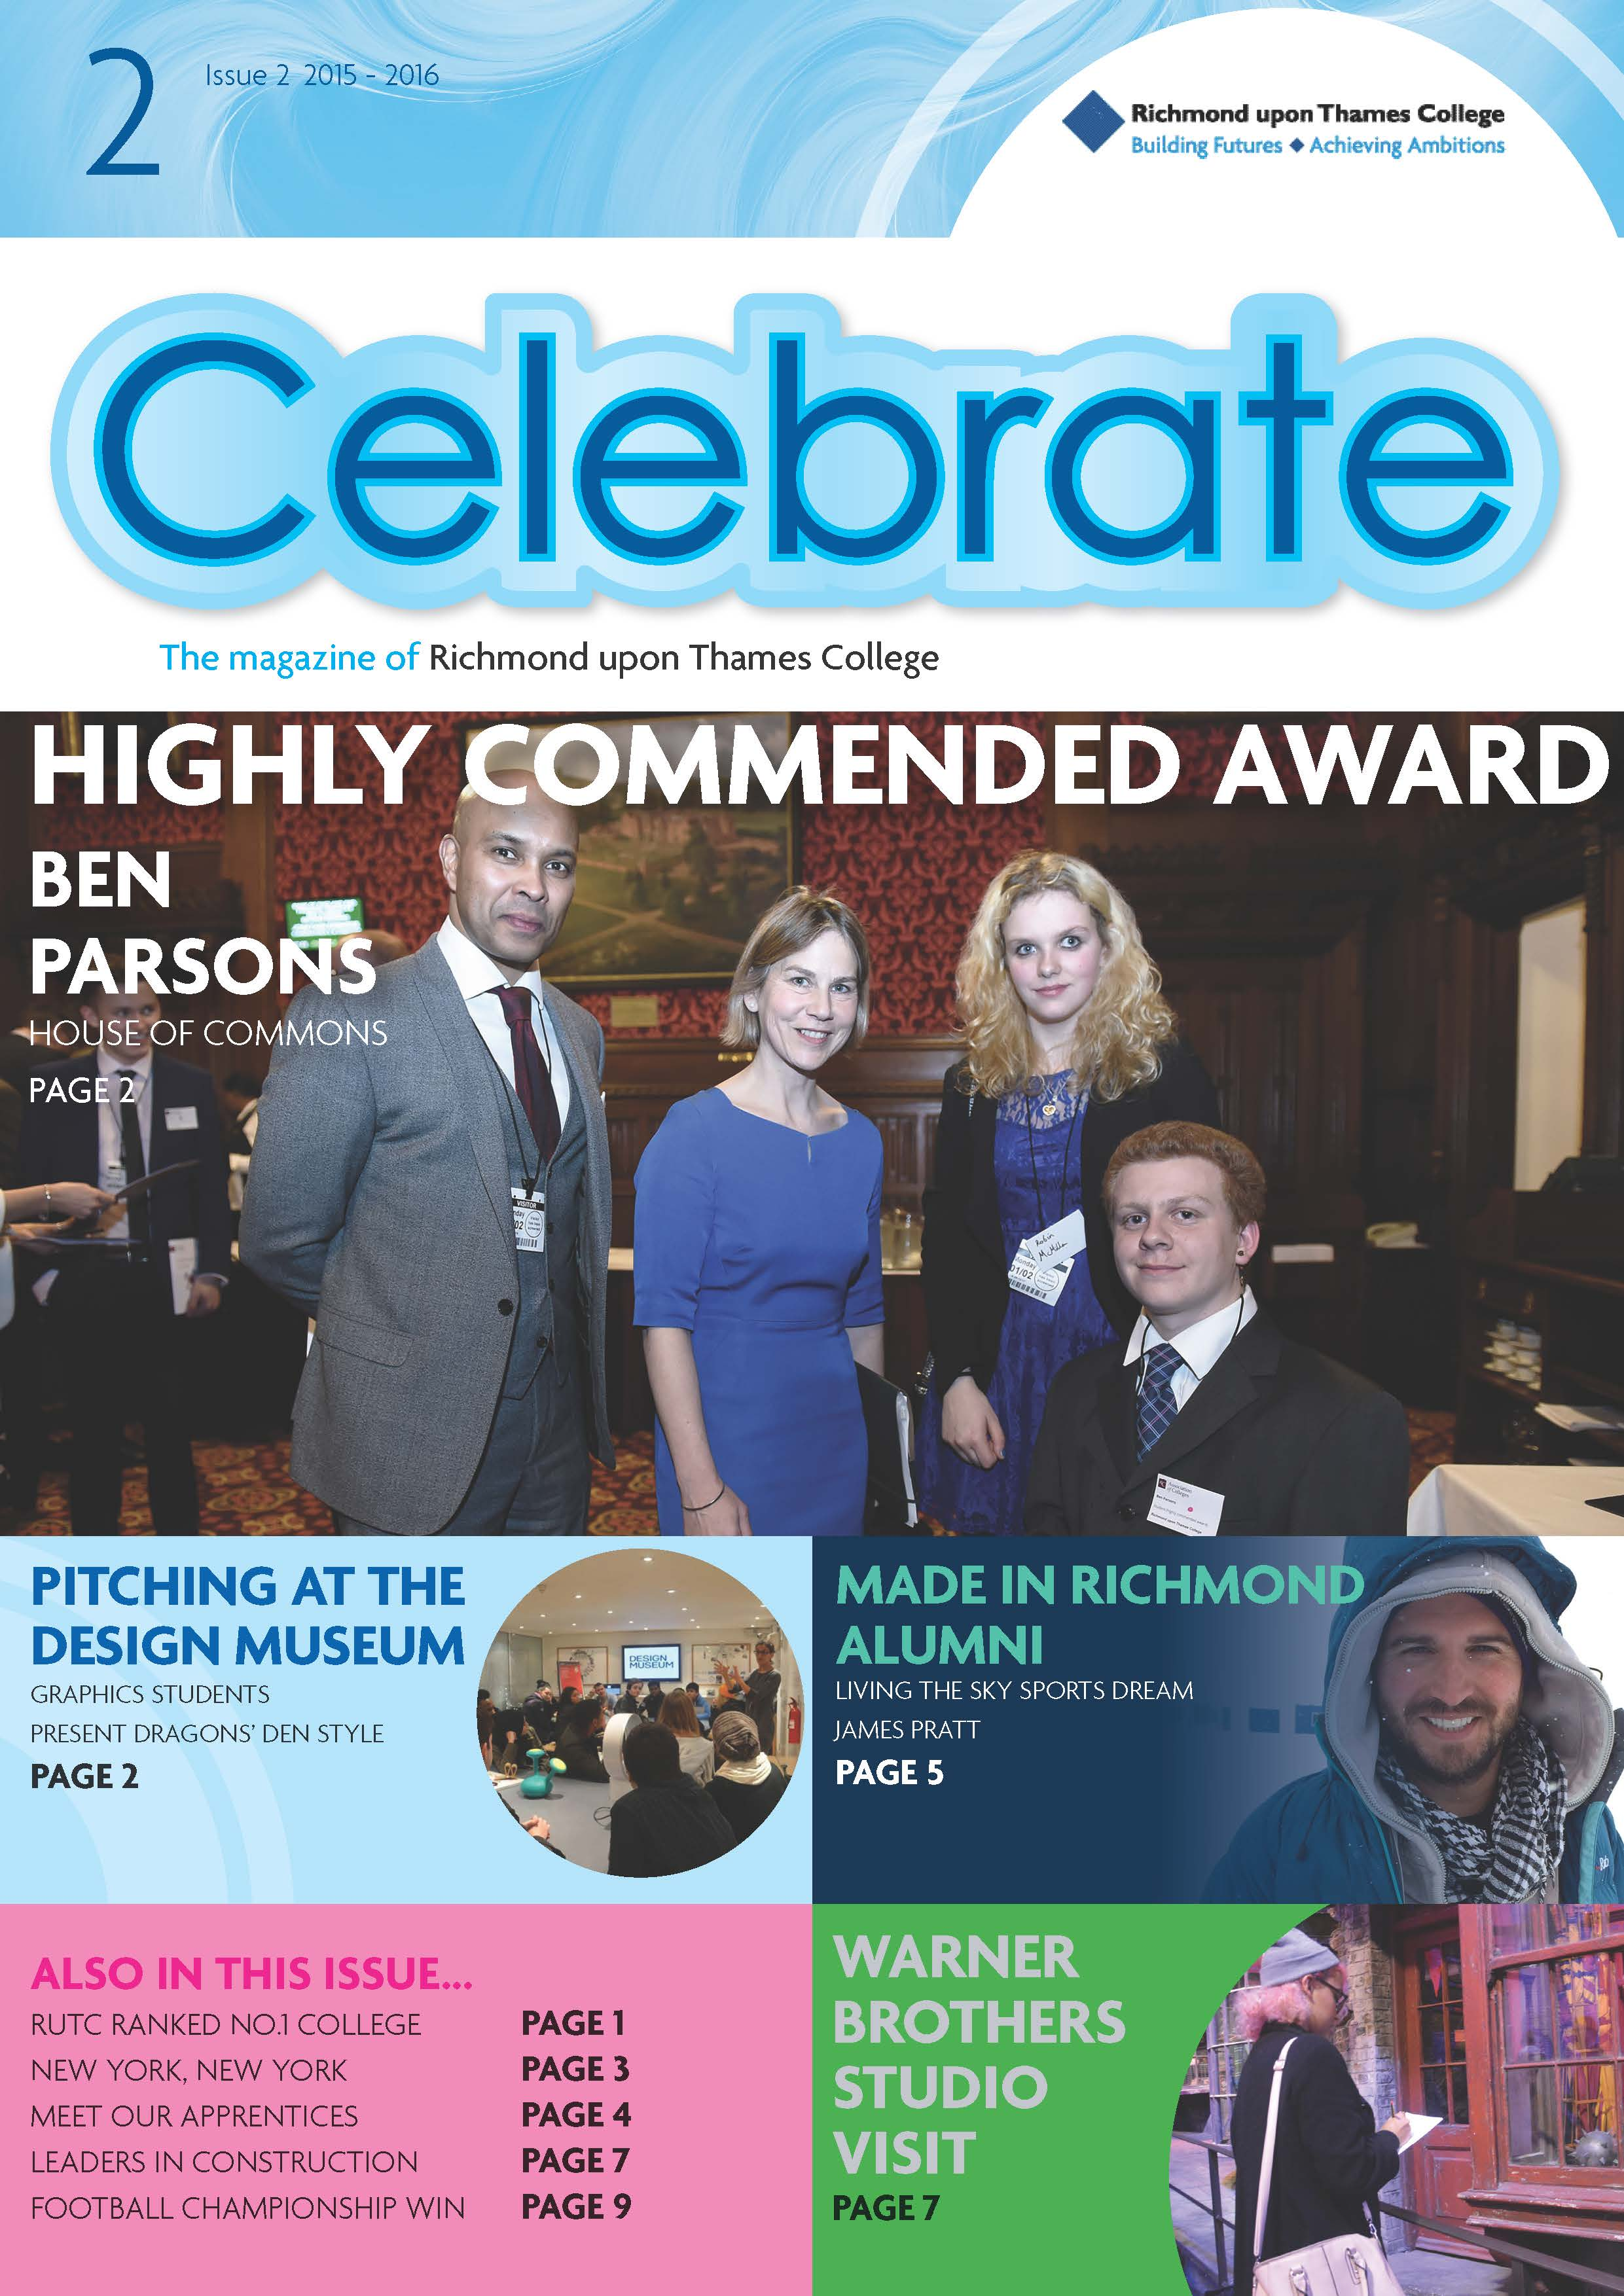 Richmond upon Thames College Magazine Celebrate Issue 2